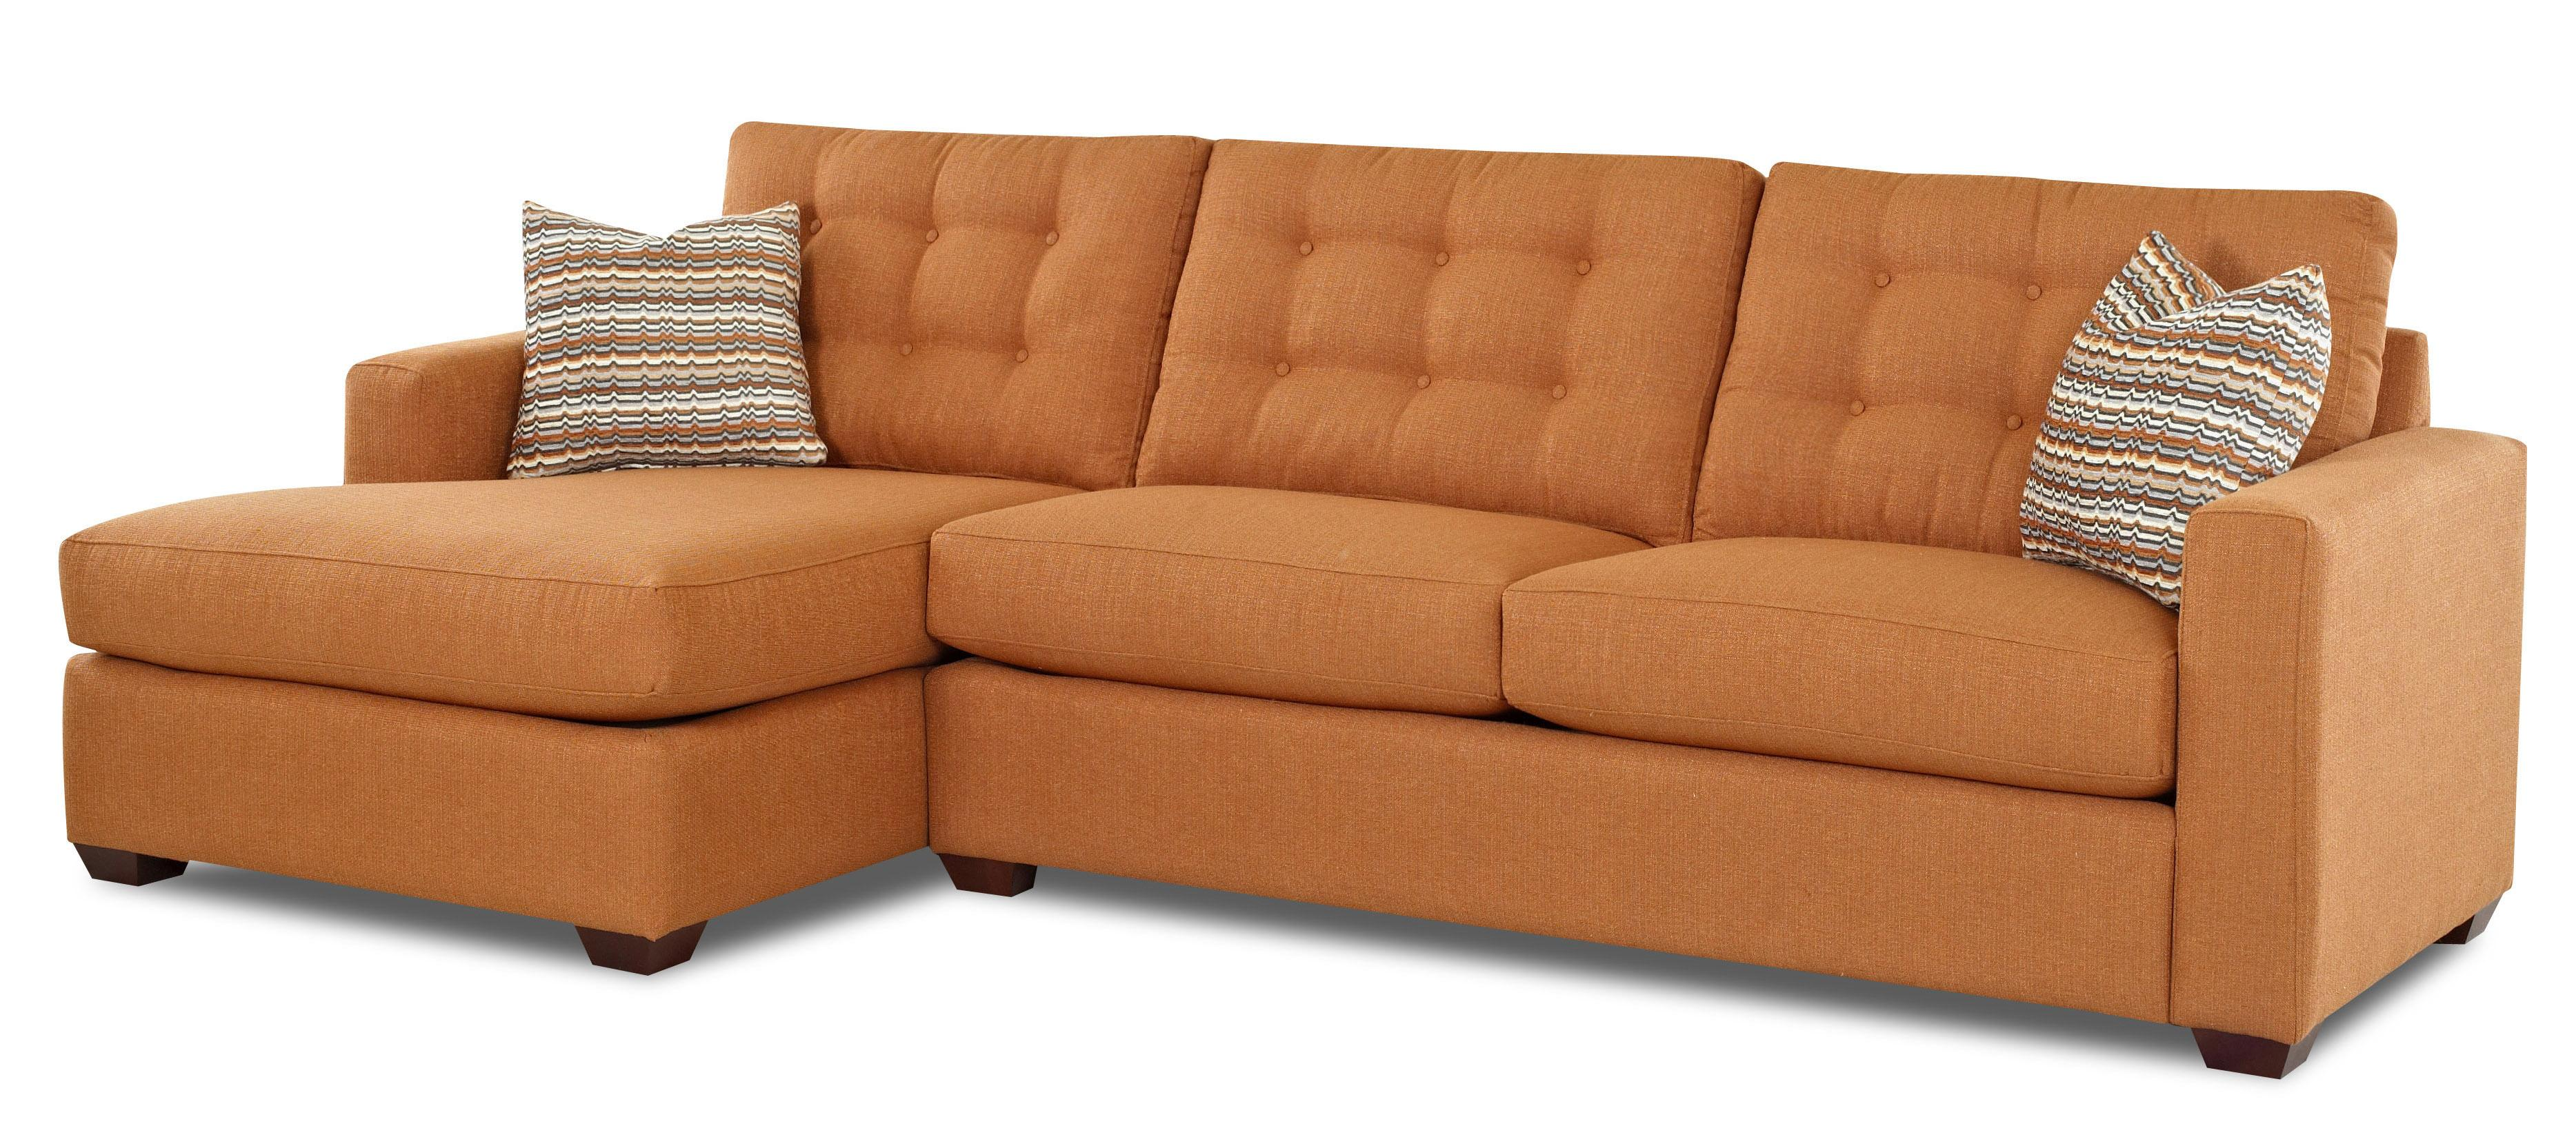 Exquisite sofa sectionals for home interior design with leather sectional sofa and sectional sleeper sofa